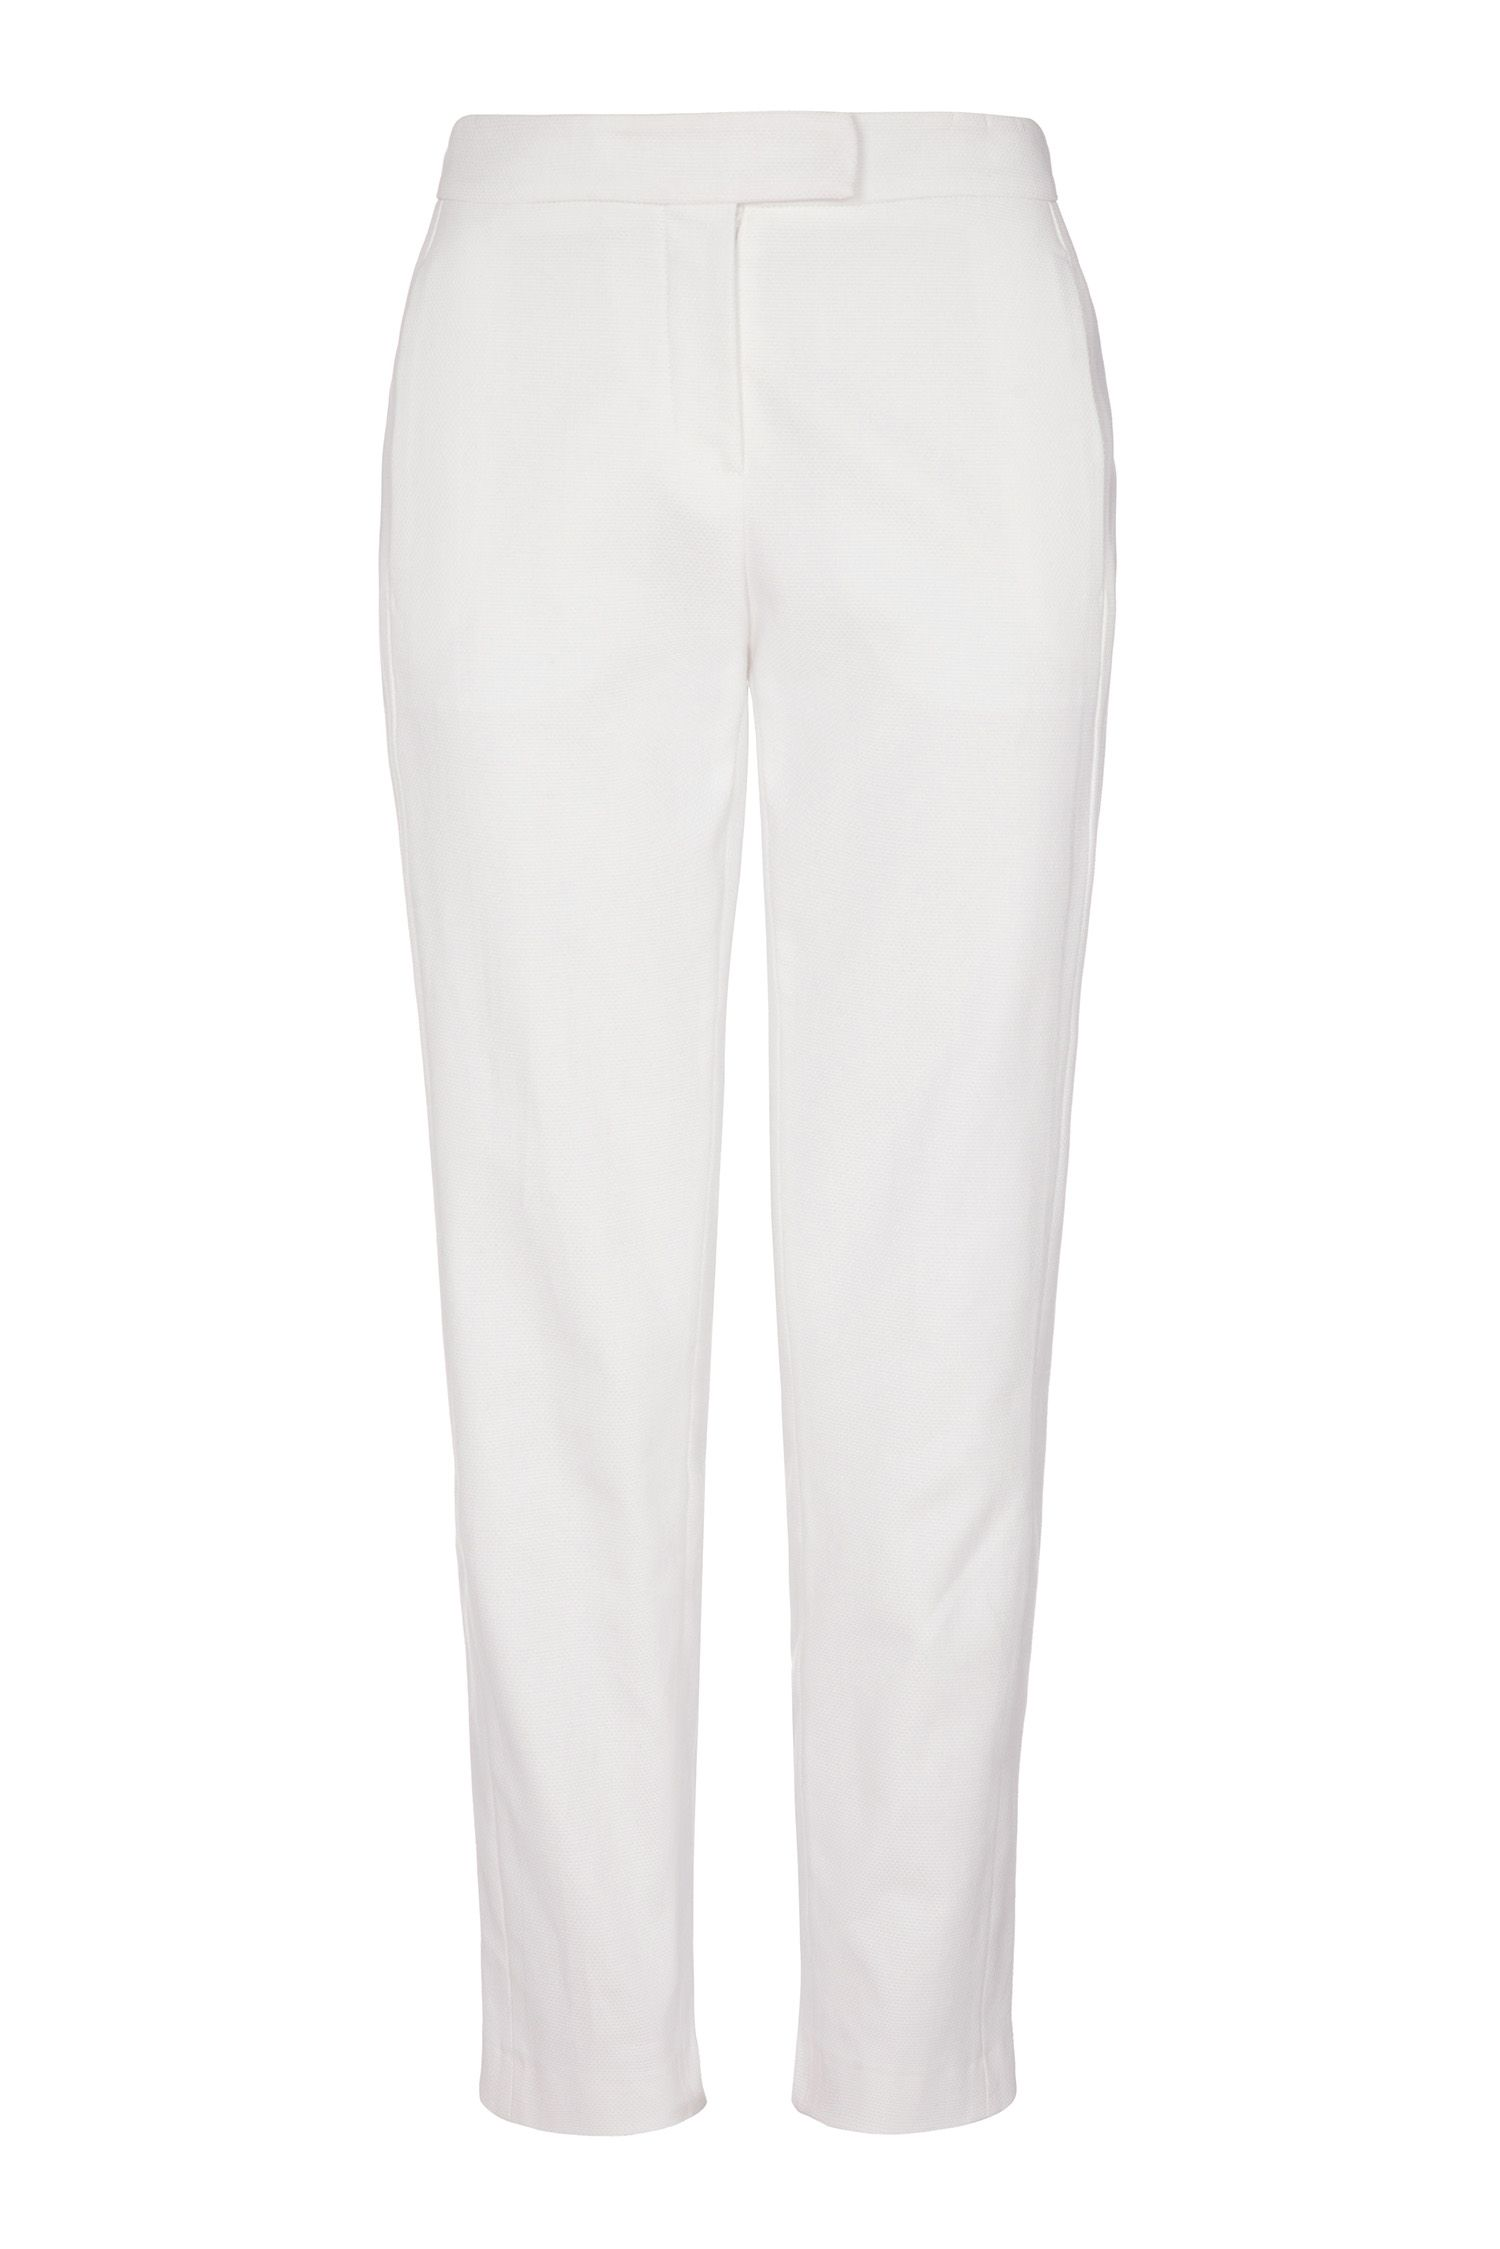 Damsel in a Dress Papyrus Trouser, White